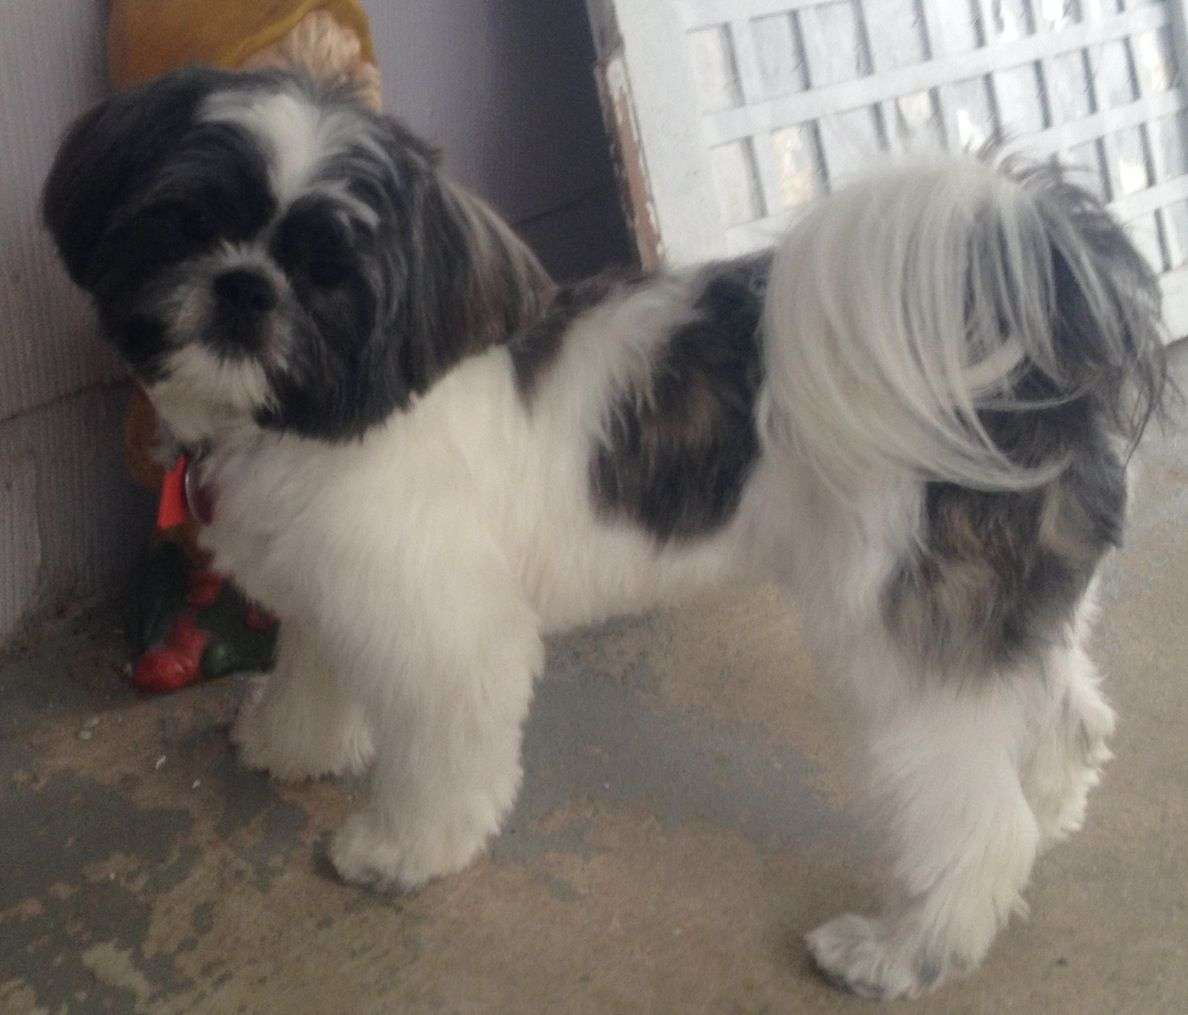 My Baby Shih Tzu Chewy 3 His New Hair Do He S So Stinkin Cute I Love My Puppy 9 1 2 Months Old 3 Dog Grooming Shih Tzu Shih Tzu Grooming Baby Shih Tzu